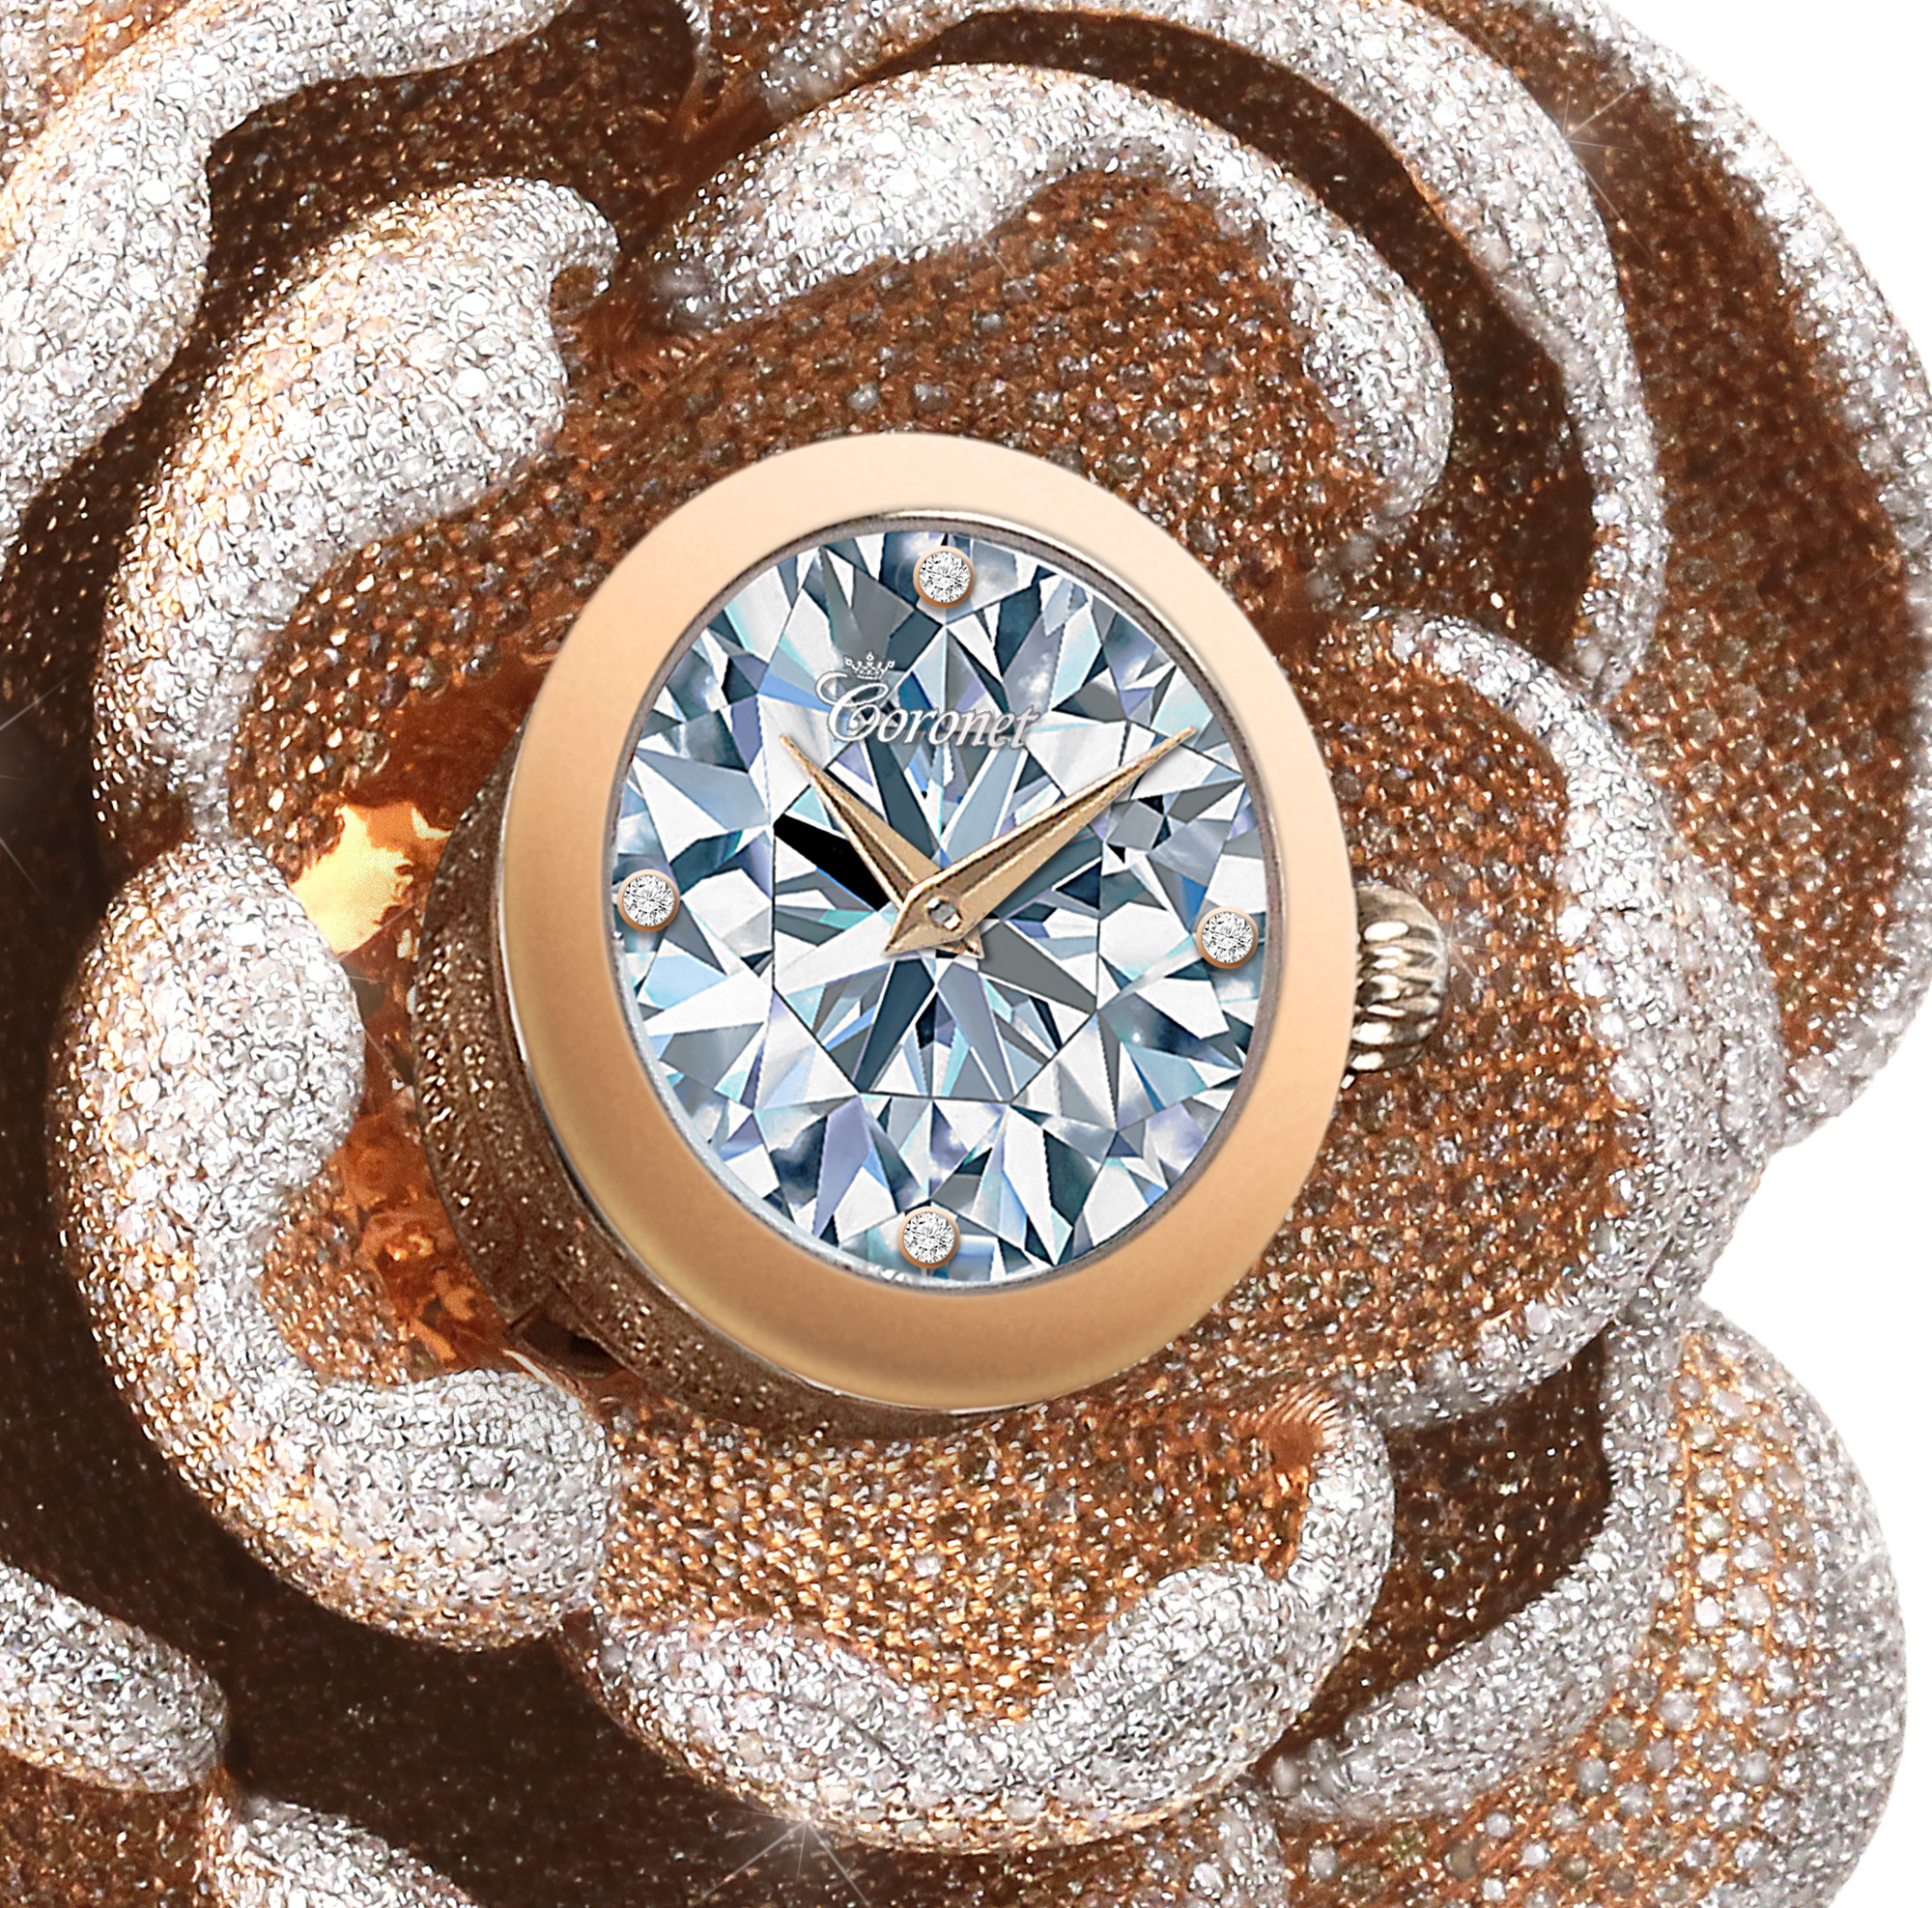 Detail. The Guinness World Records CORONET 'Mudan' diamond watch features 15,858 diamonds - most diamonds set in a watch. The watch is set in 18K gold with artist Reena Ahluwalia's unmatchable diamond painting on the dial.